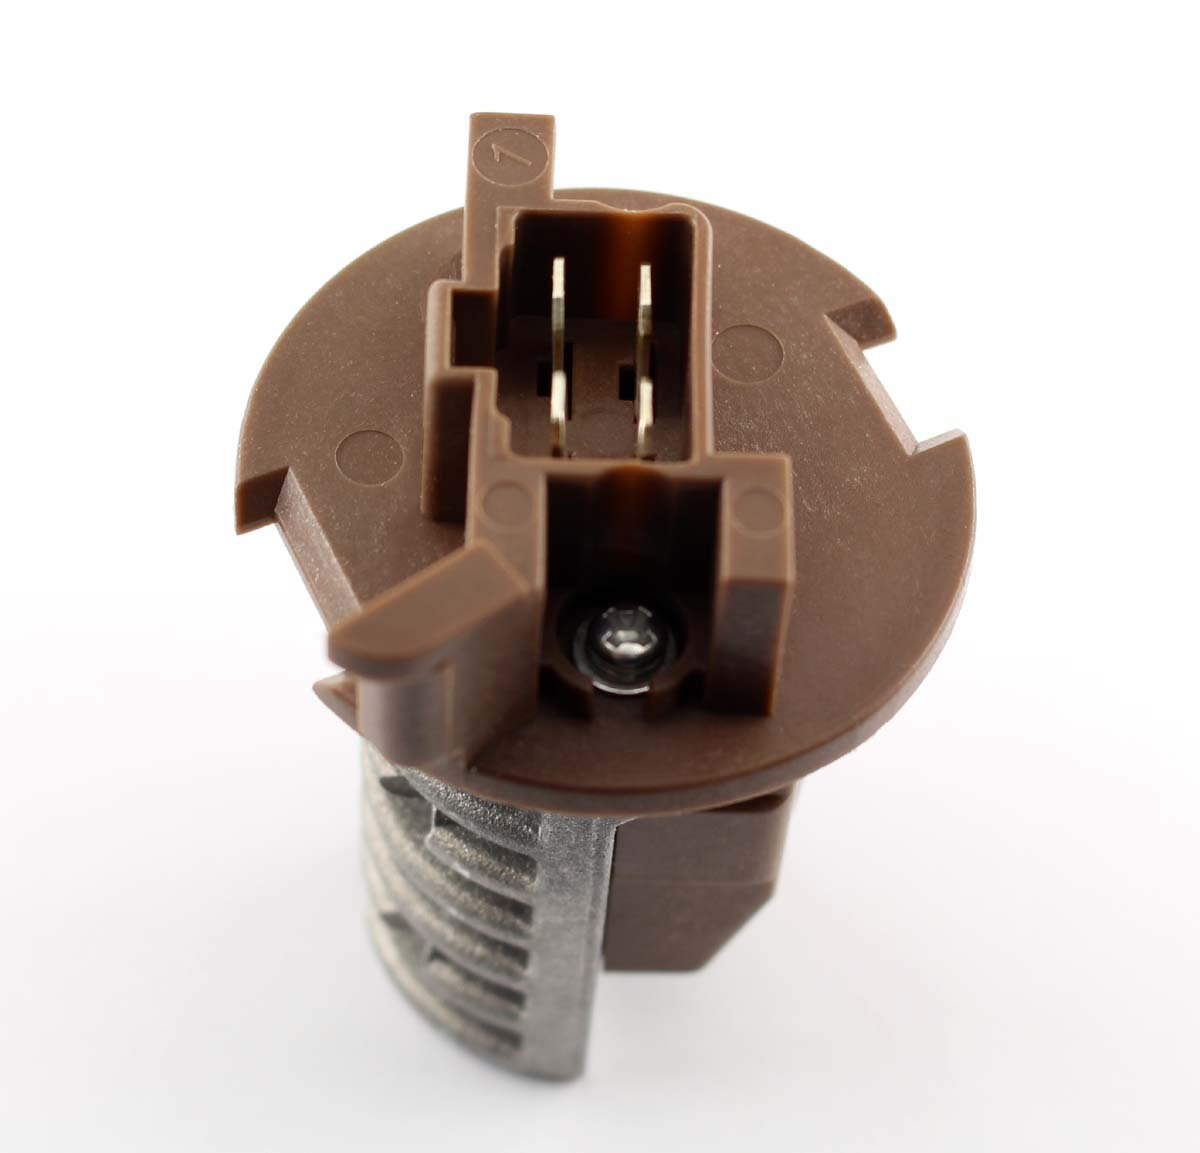 New Blower Motor Transistor for Honda Pilot Acura MDX Rear Replaces OE Part Number 79330-S3V-A51//79330S3VA51